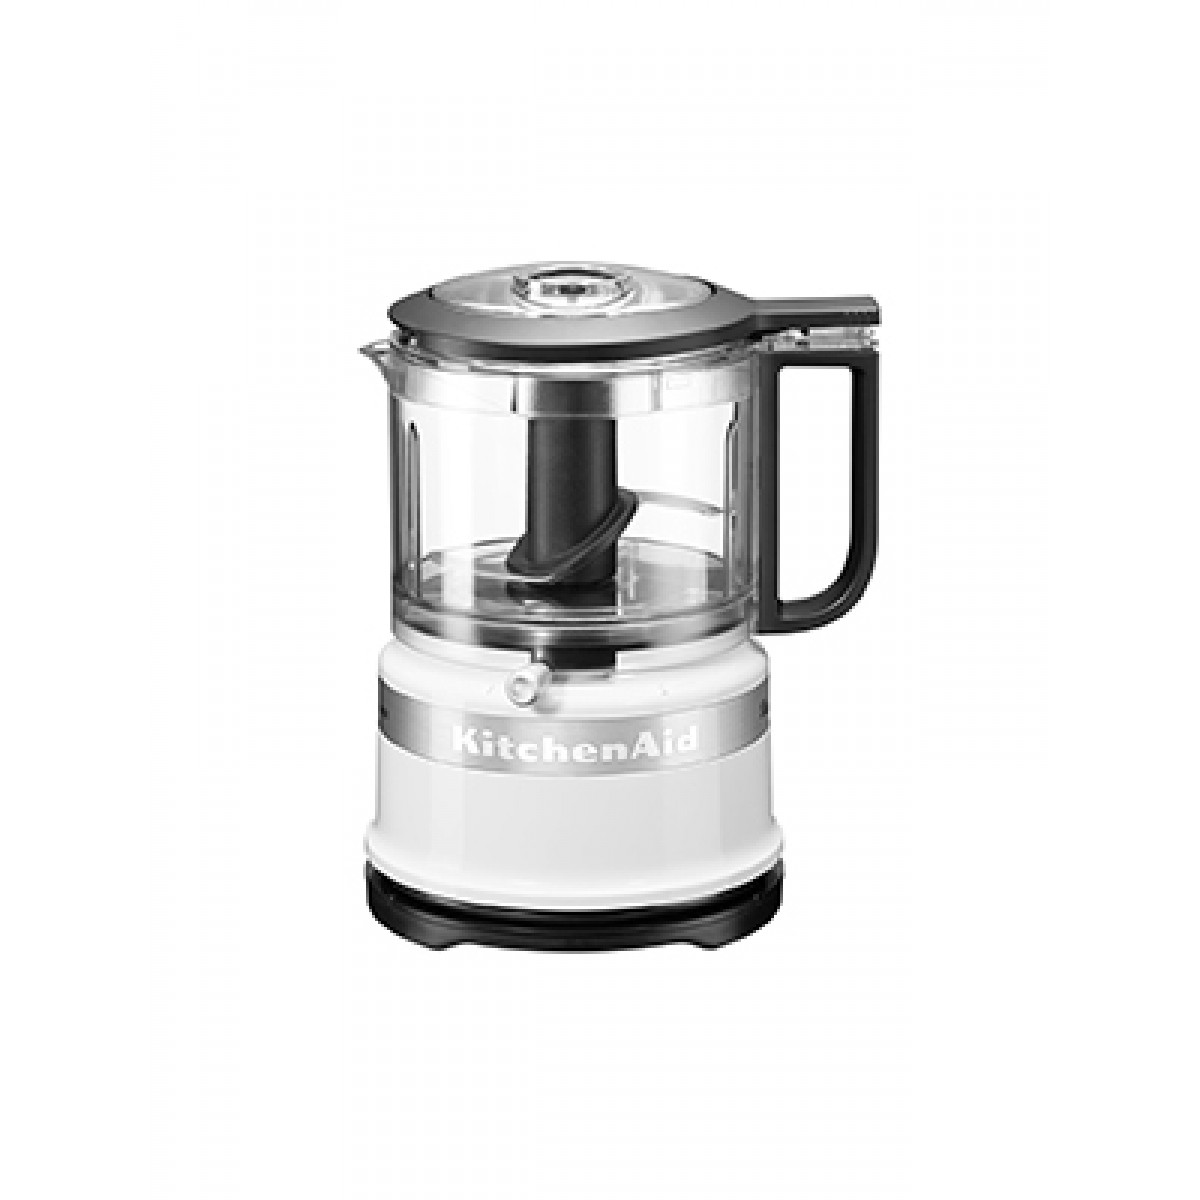 Kitchenaid 5kfc3516bwh Food Processor Small Appliances